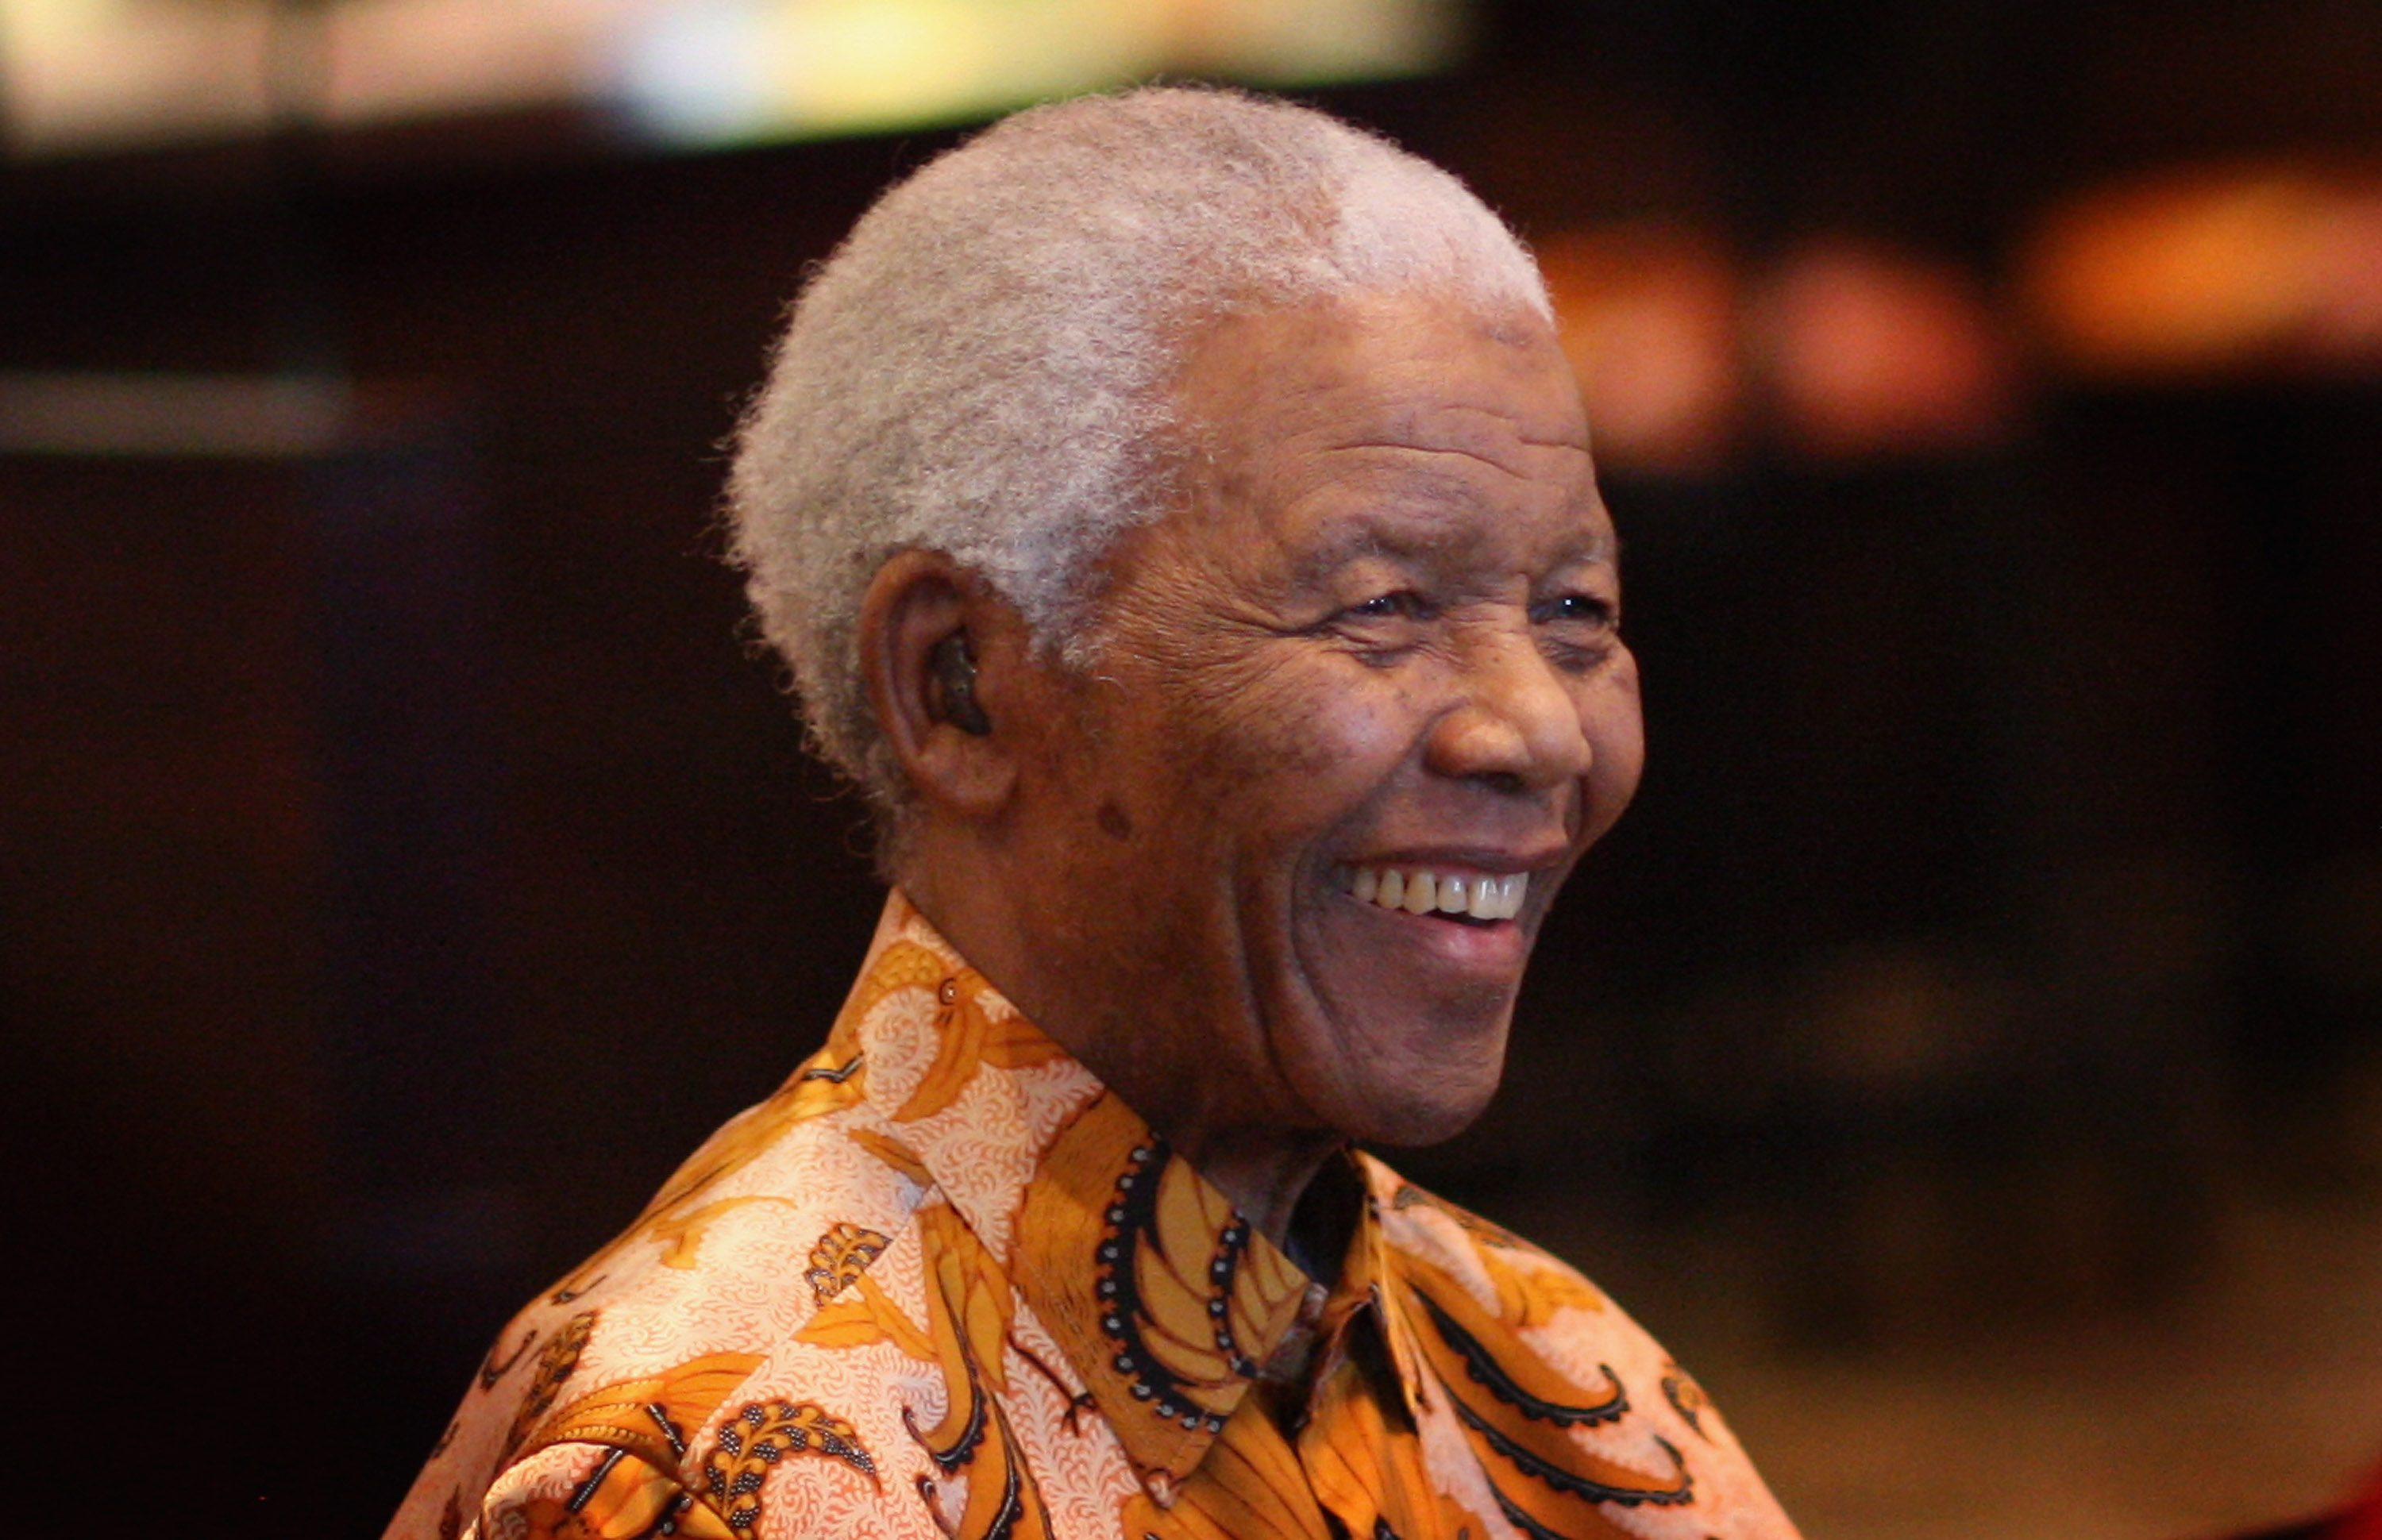 One&Only Cape Town: Lunch To Benefit The Mandela Children's Foundation